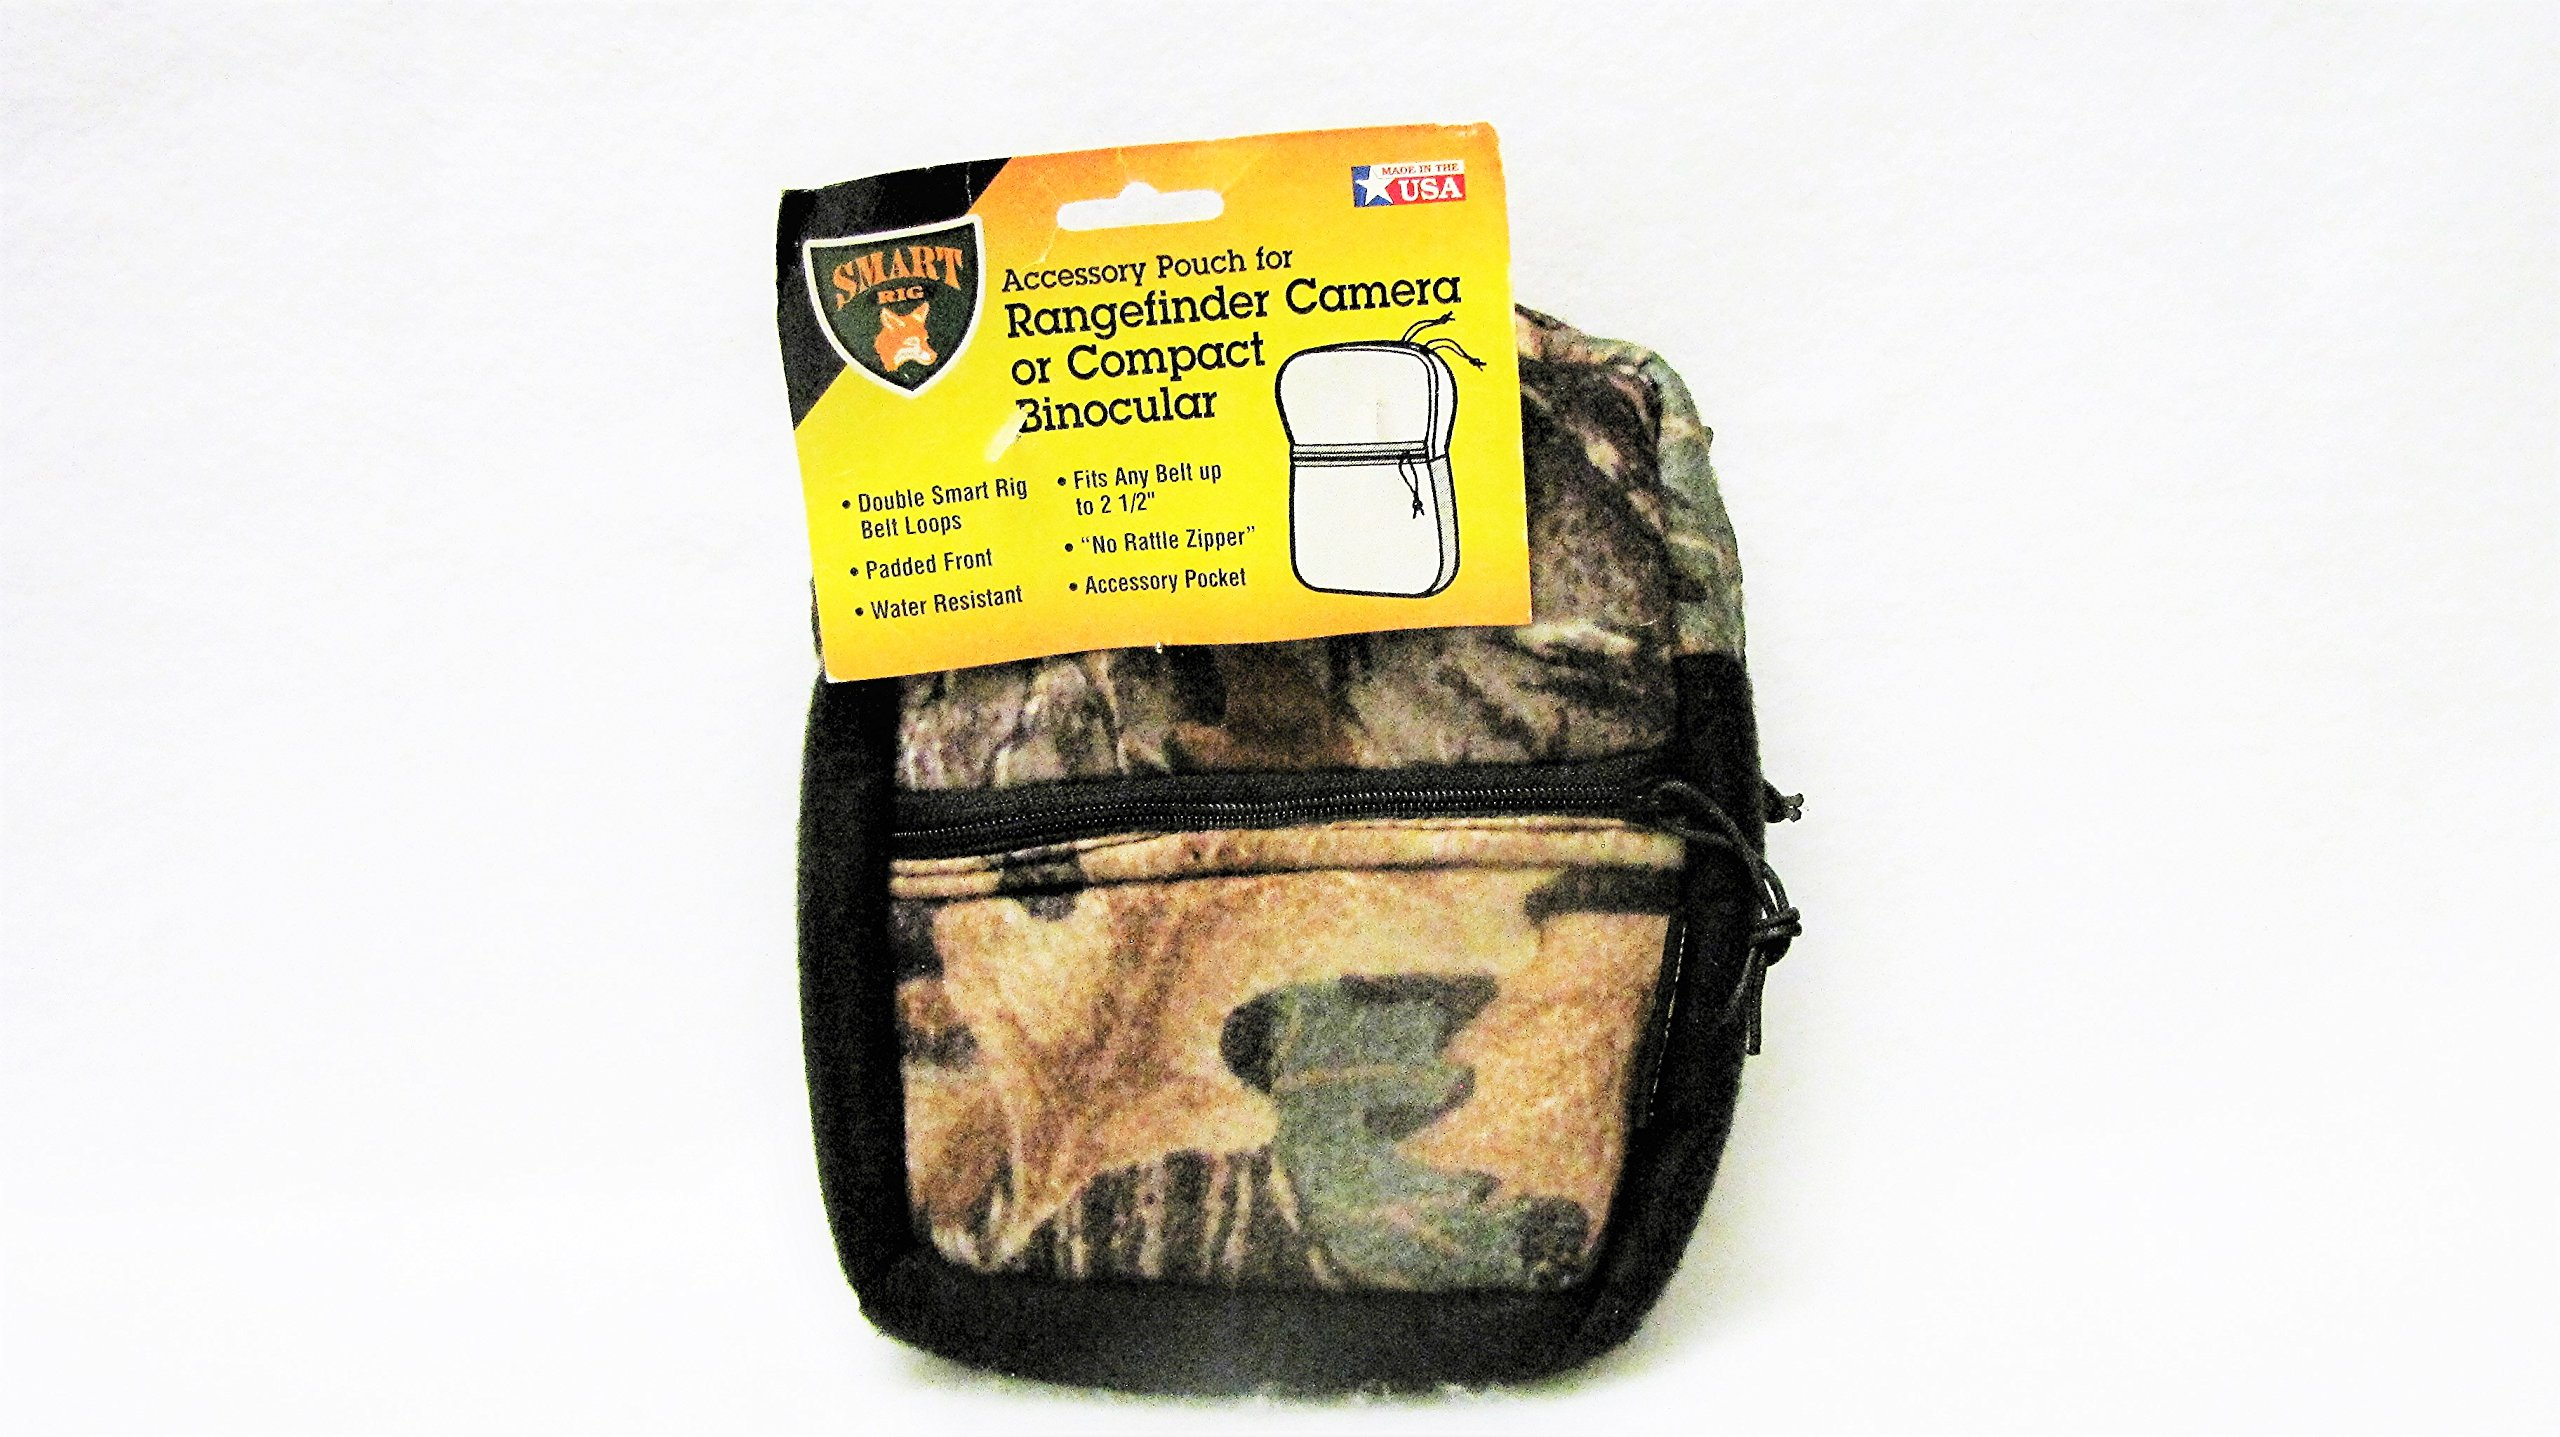 SMART RIG ACCESSORY POUCH FOR RANGEFINDER OR BINOCULARS AM147 by Allen